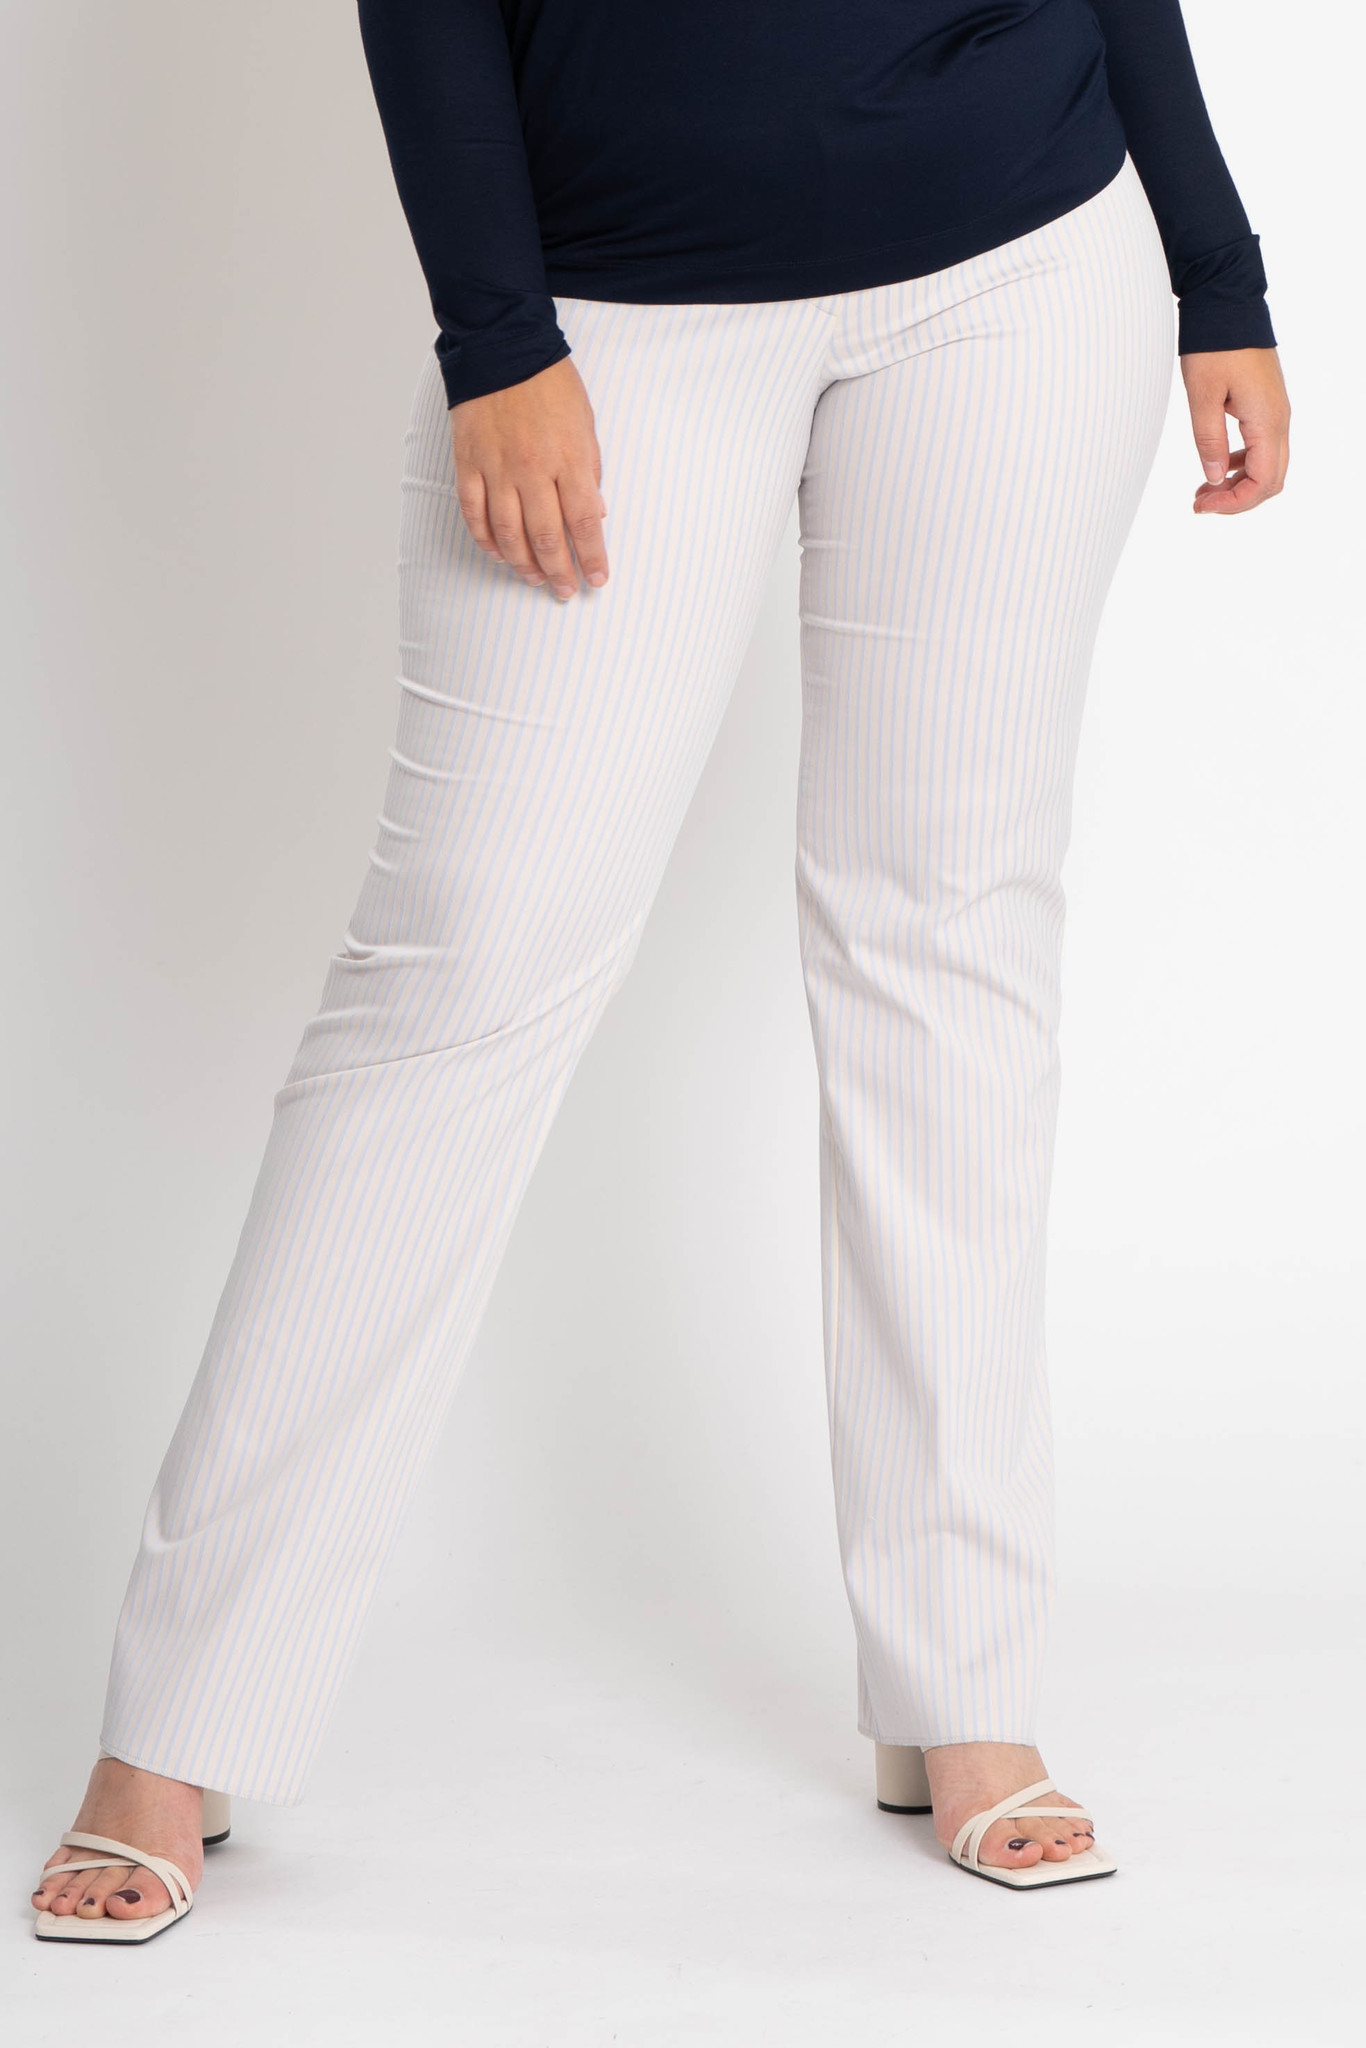 ZWOLF Trousers in striped stretch cotton mix-1